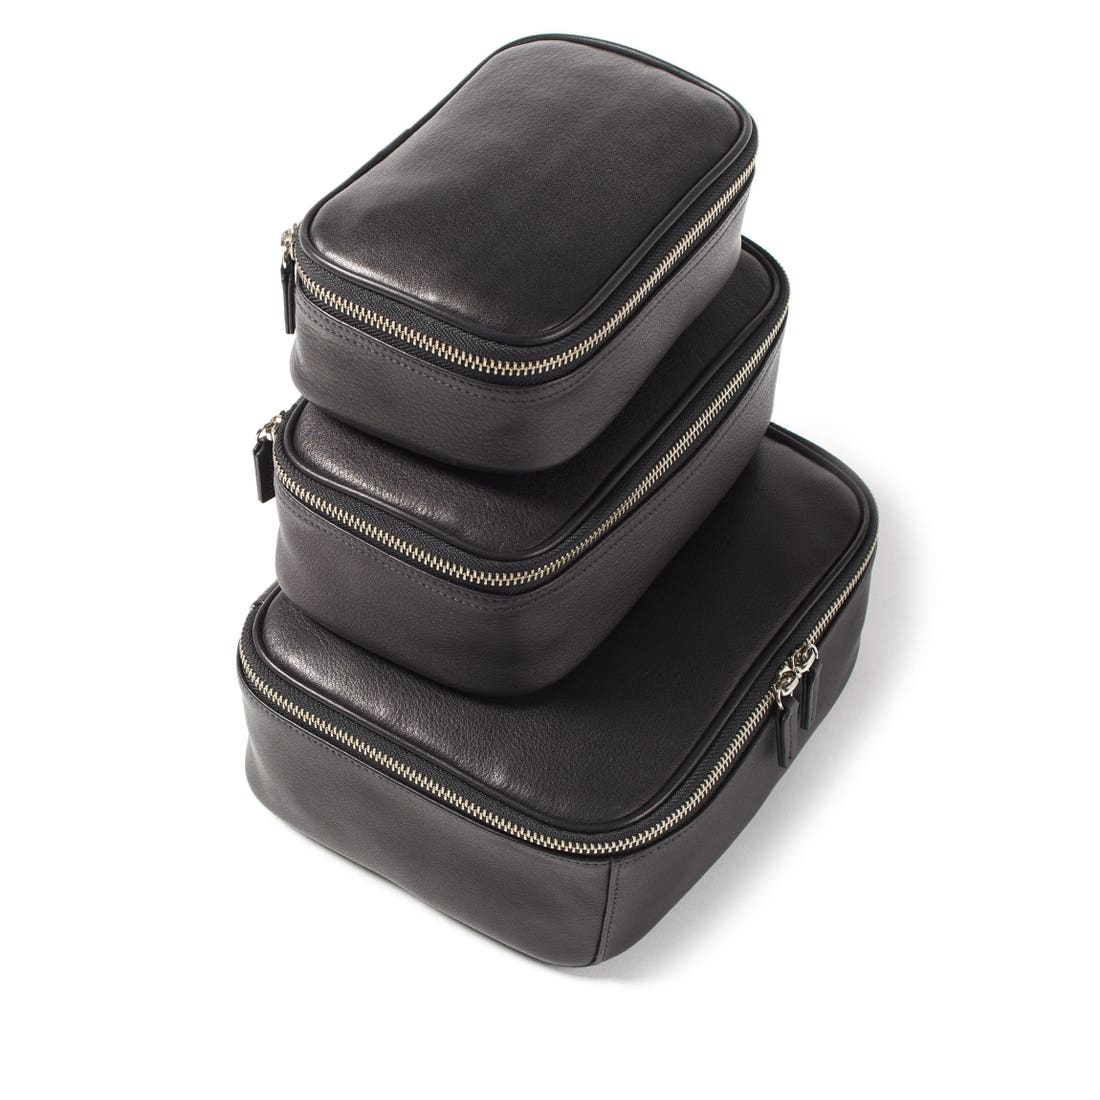 Nested Travel Organizer Trio